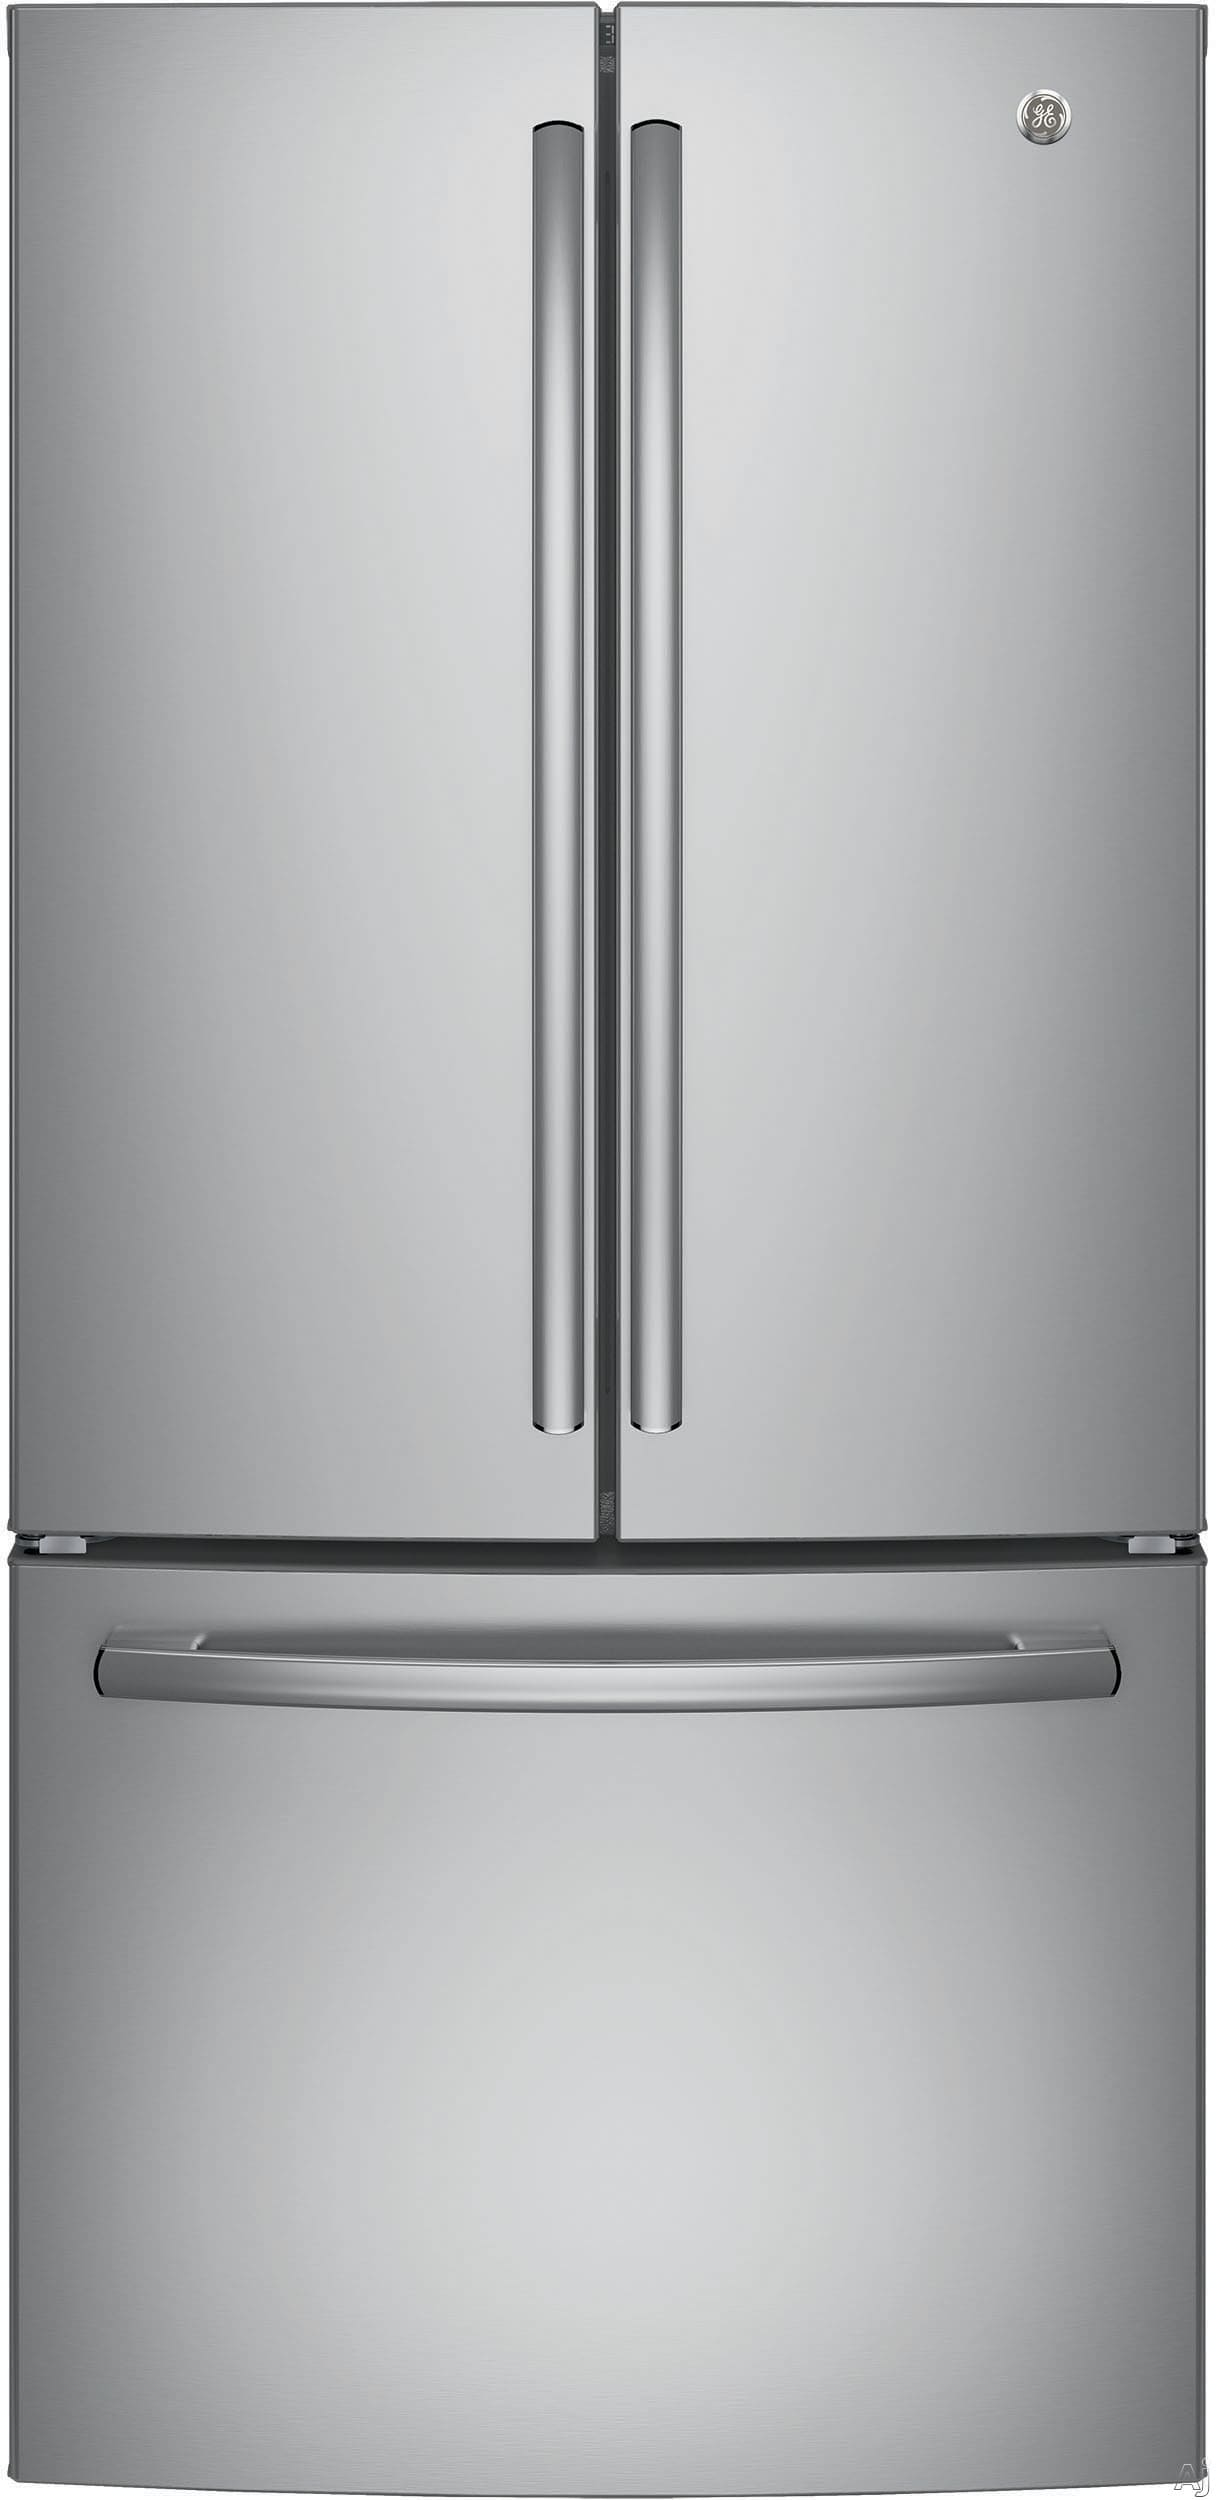 Ge Gne25jskss 33 Inch French Door Refrigerator With